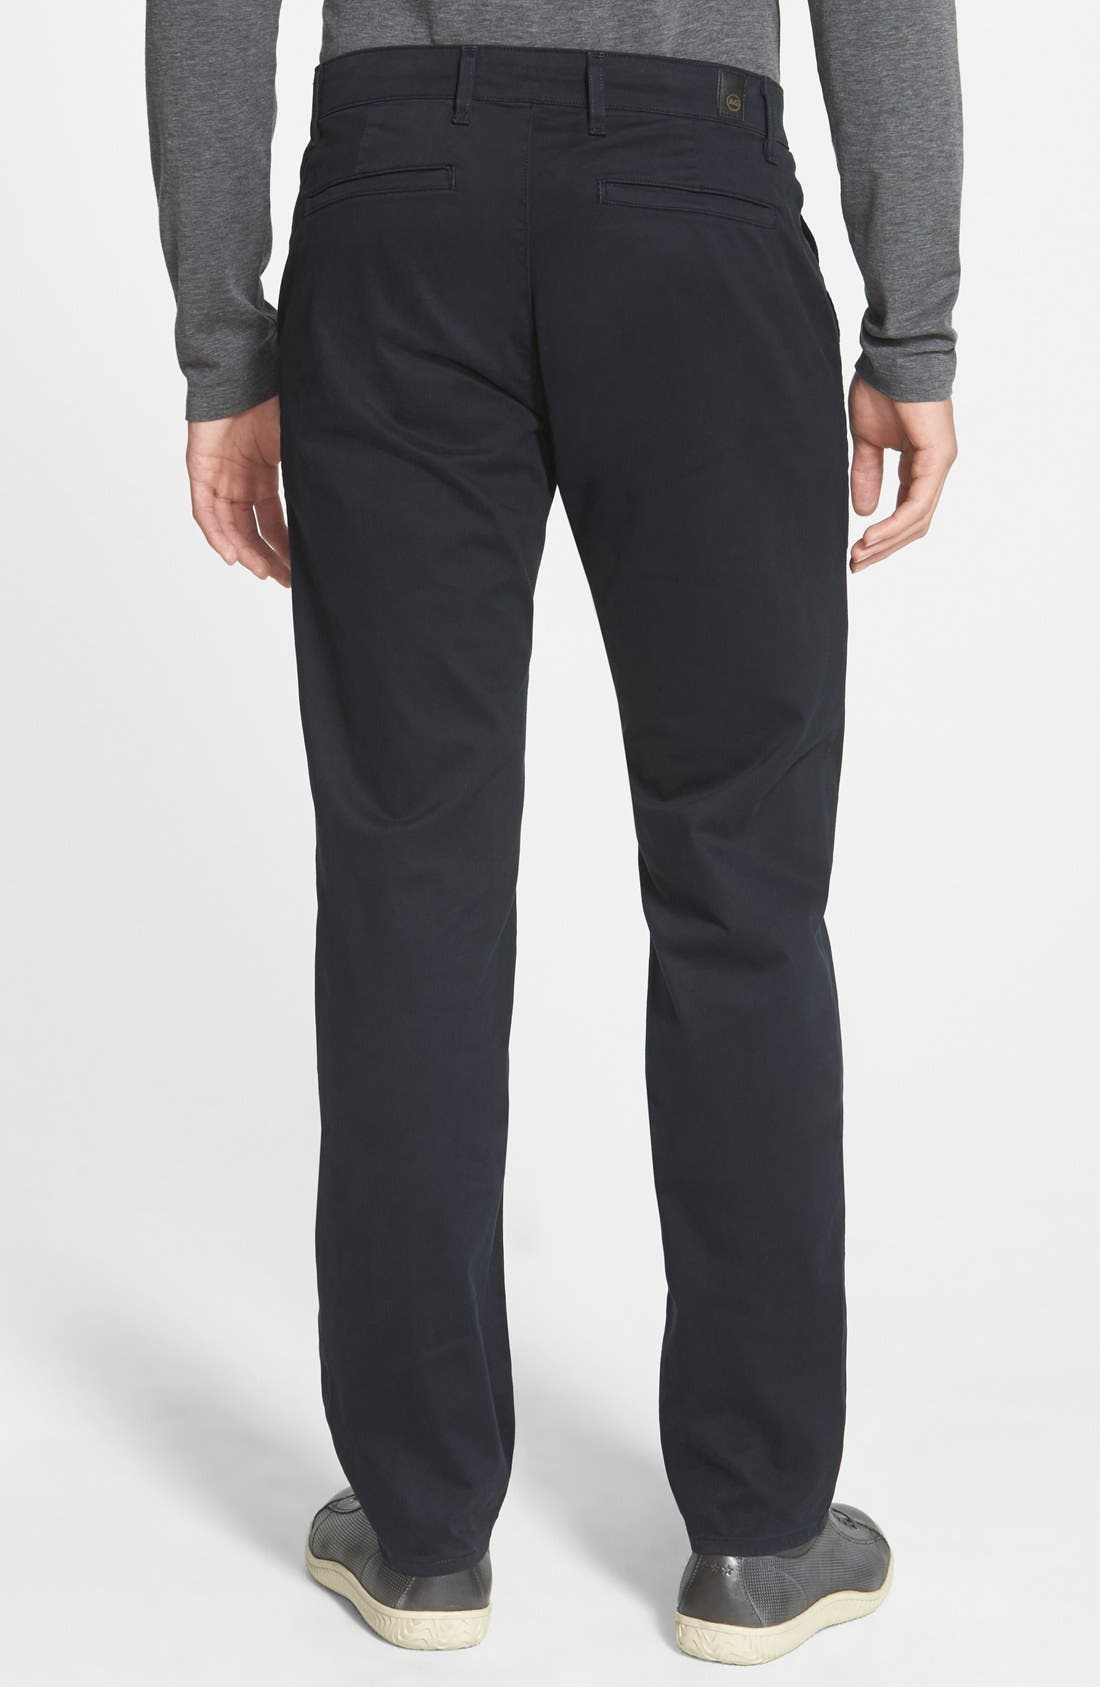 'The Lux' Tailored Straight Leg Chinos,                             Alternate thumbnail 30, color,